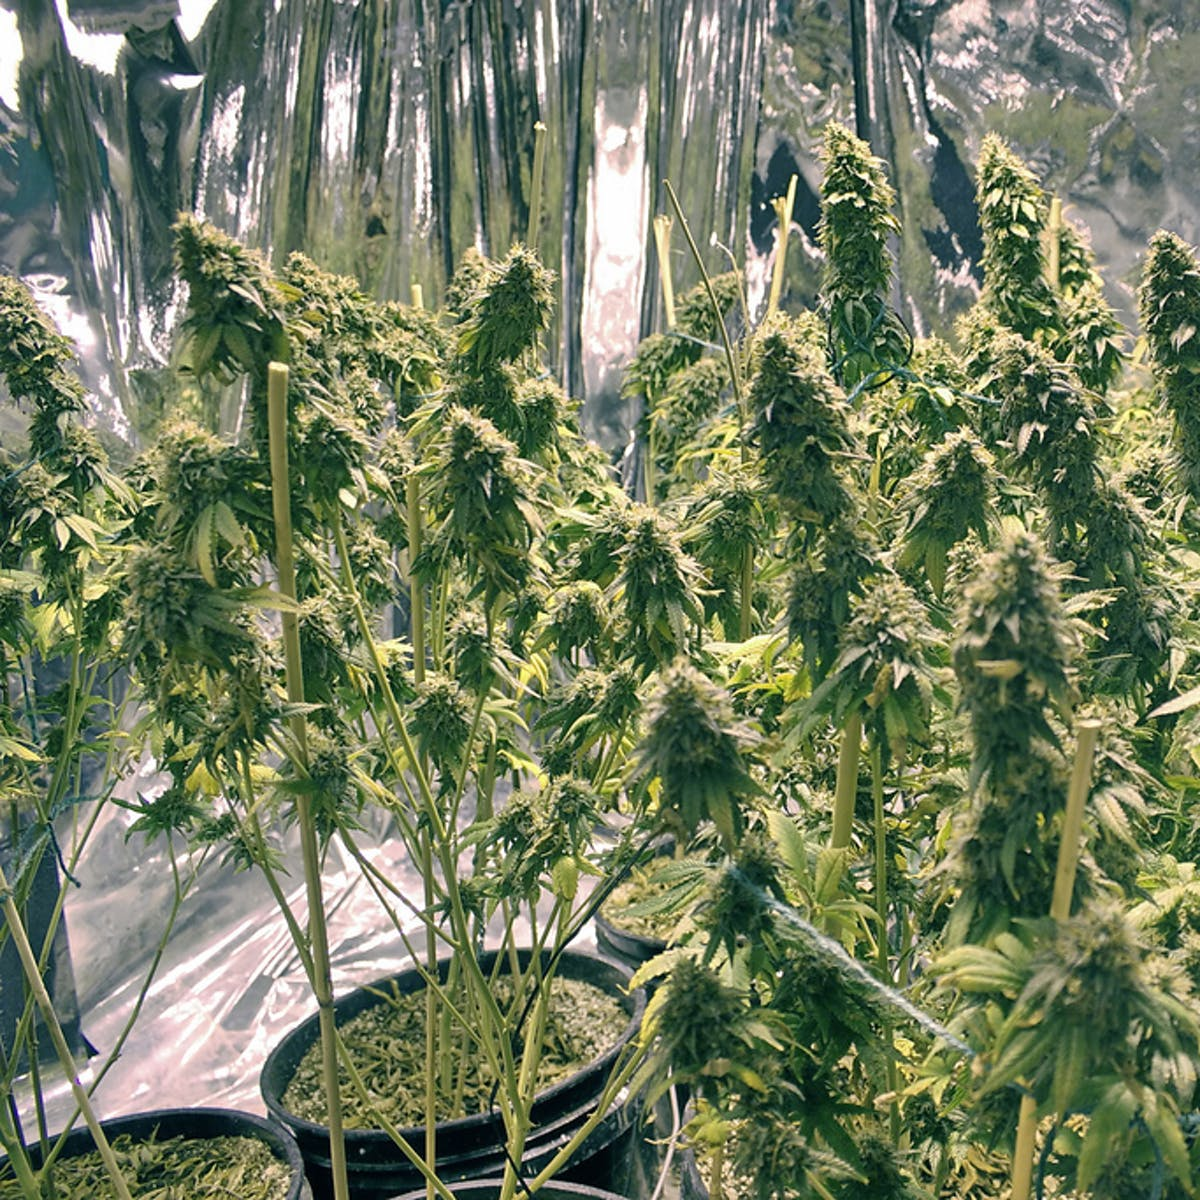 Science Explains Just How Long Weed Stays in Your Hair | Inverse